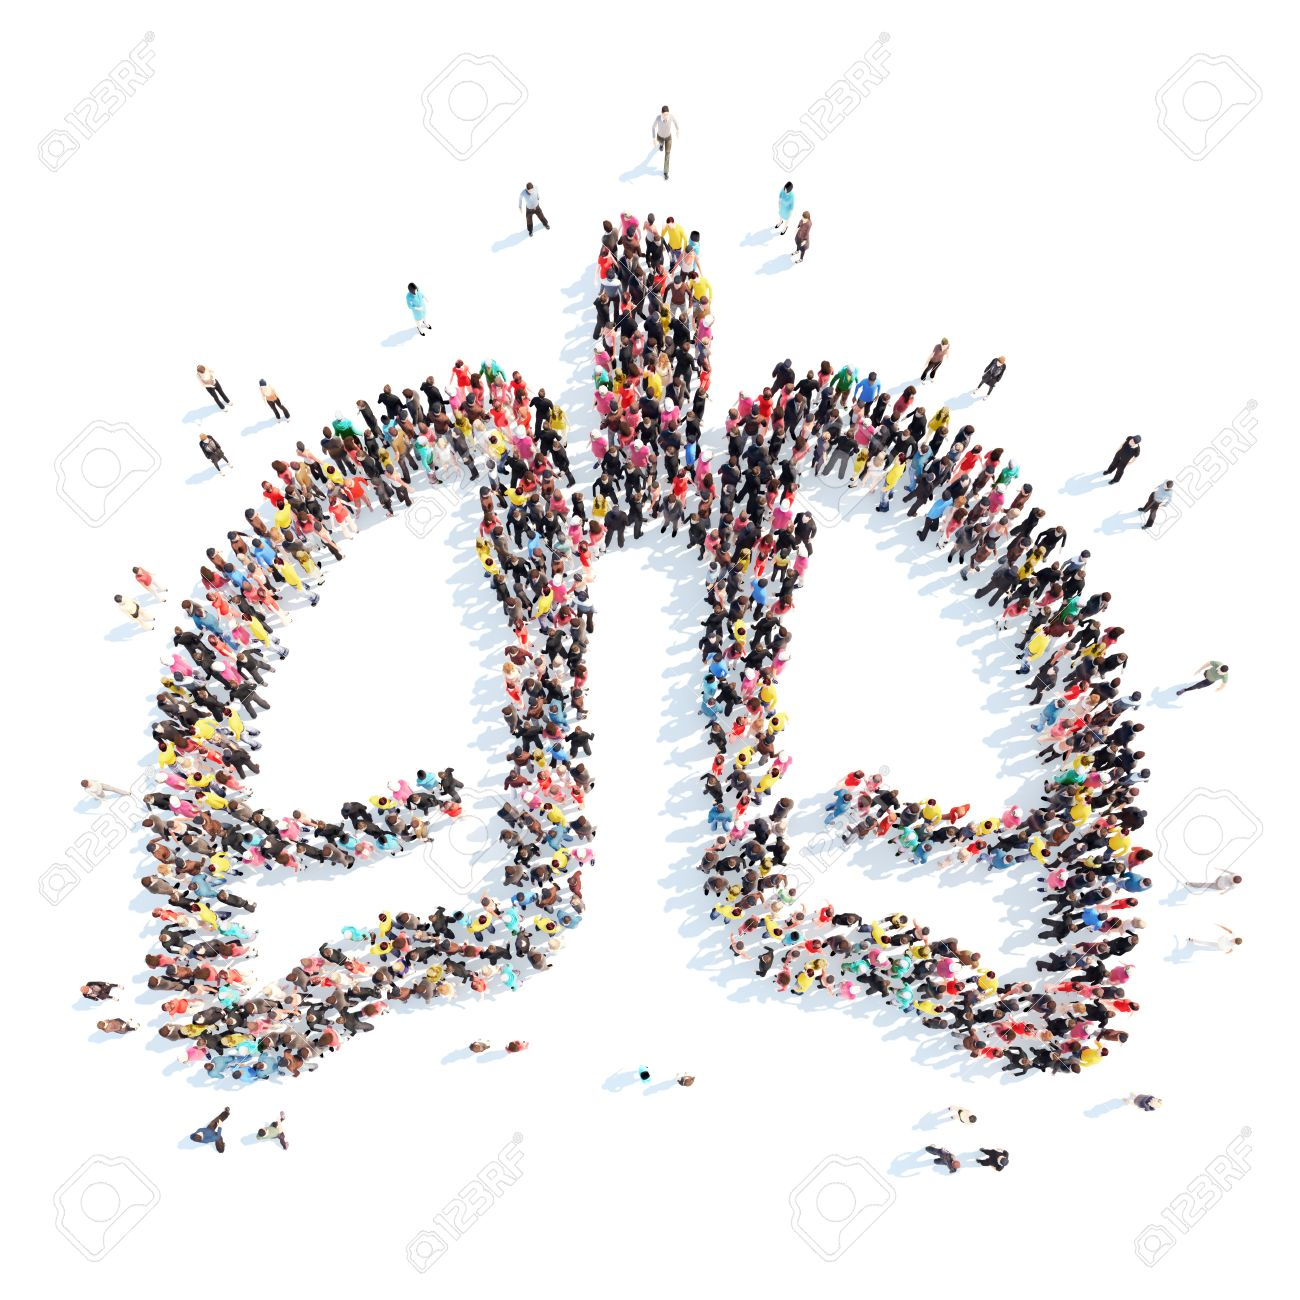 A large group of people in the form of the human lungs. Isolated, white background. - 41244339